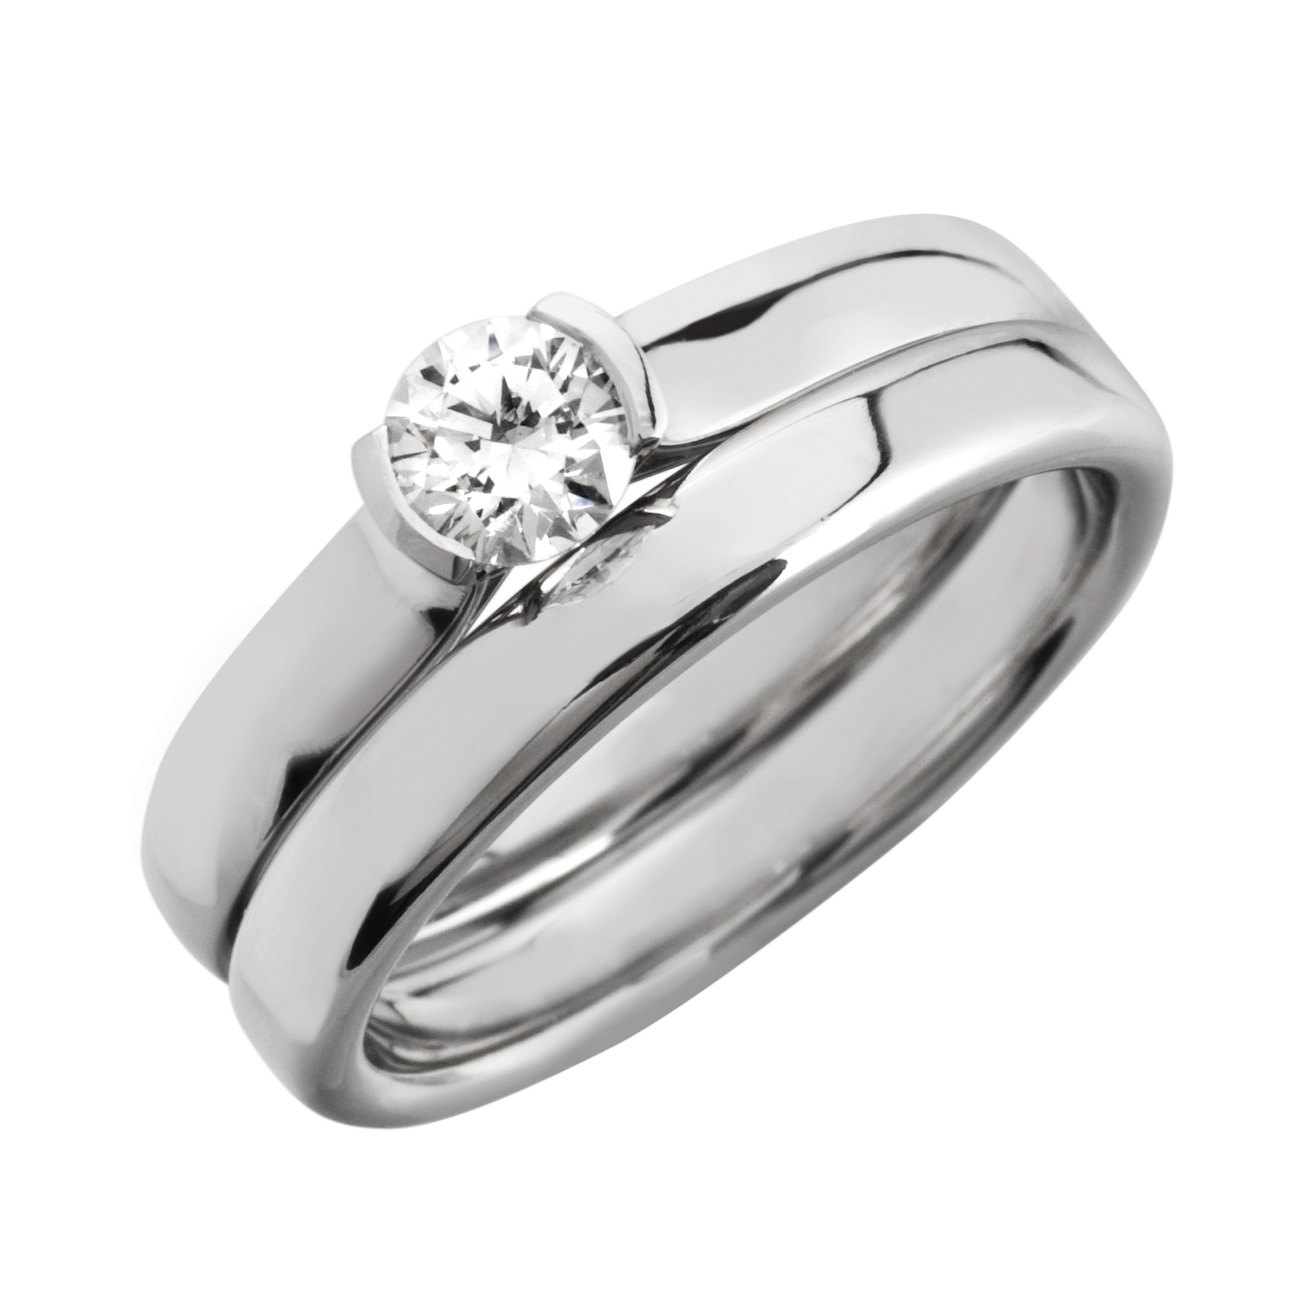 Diamonds and Rings the Online Jeweller Launches a New Range of